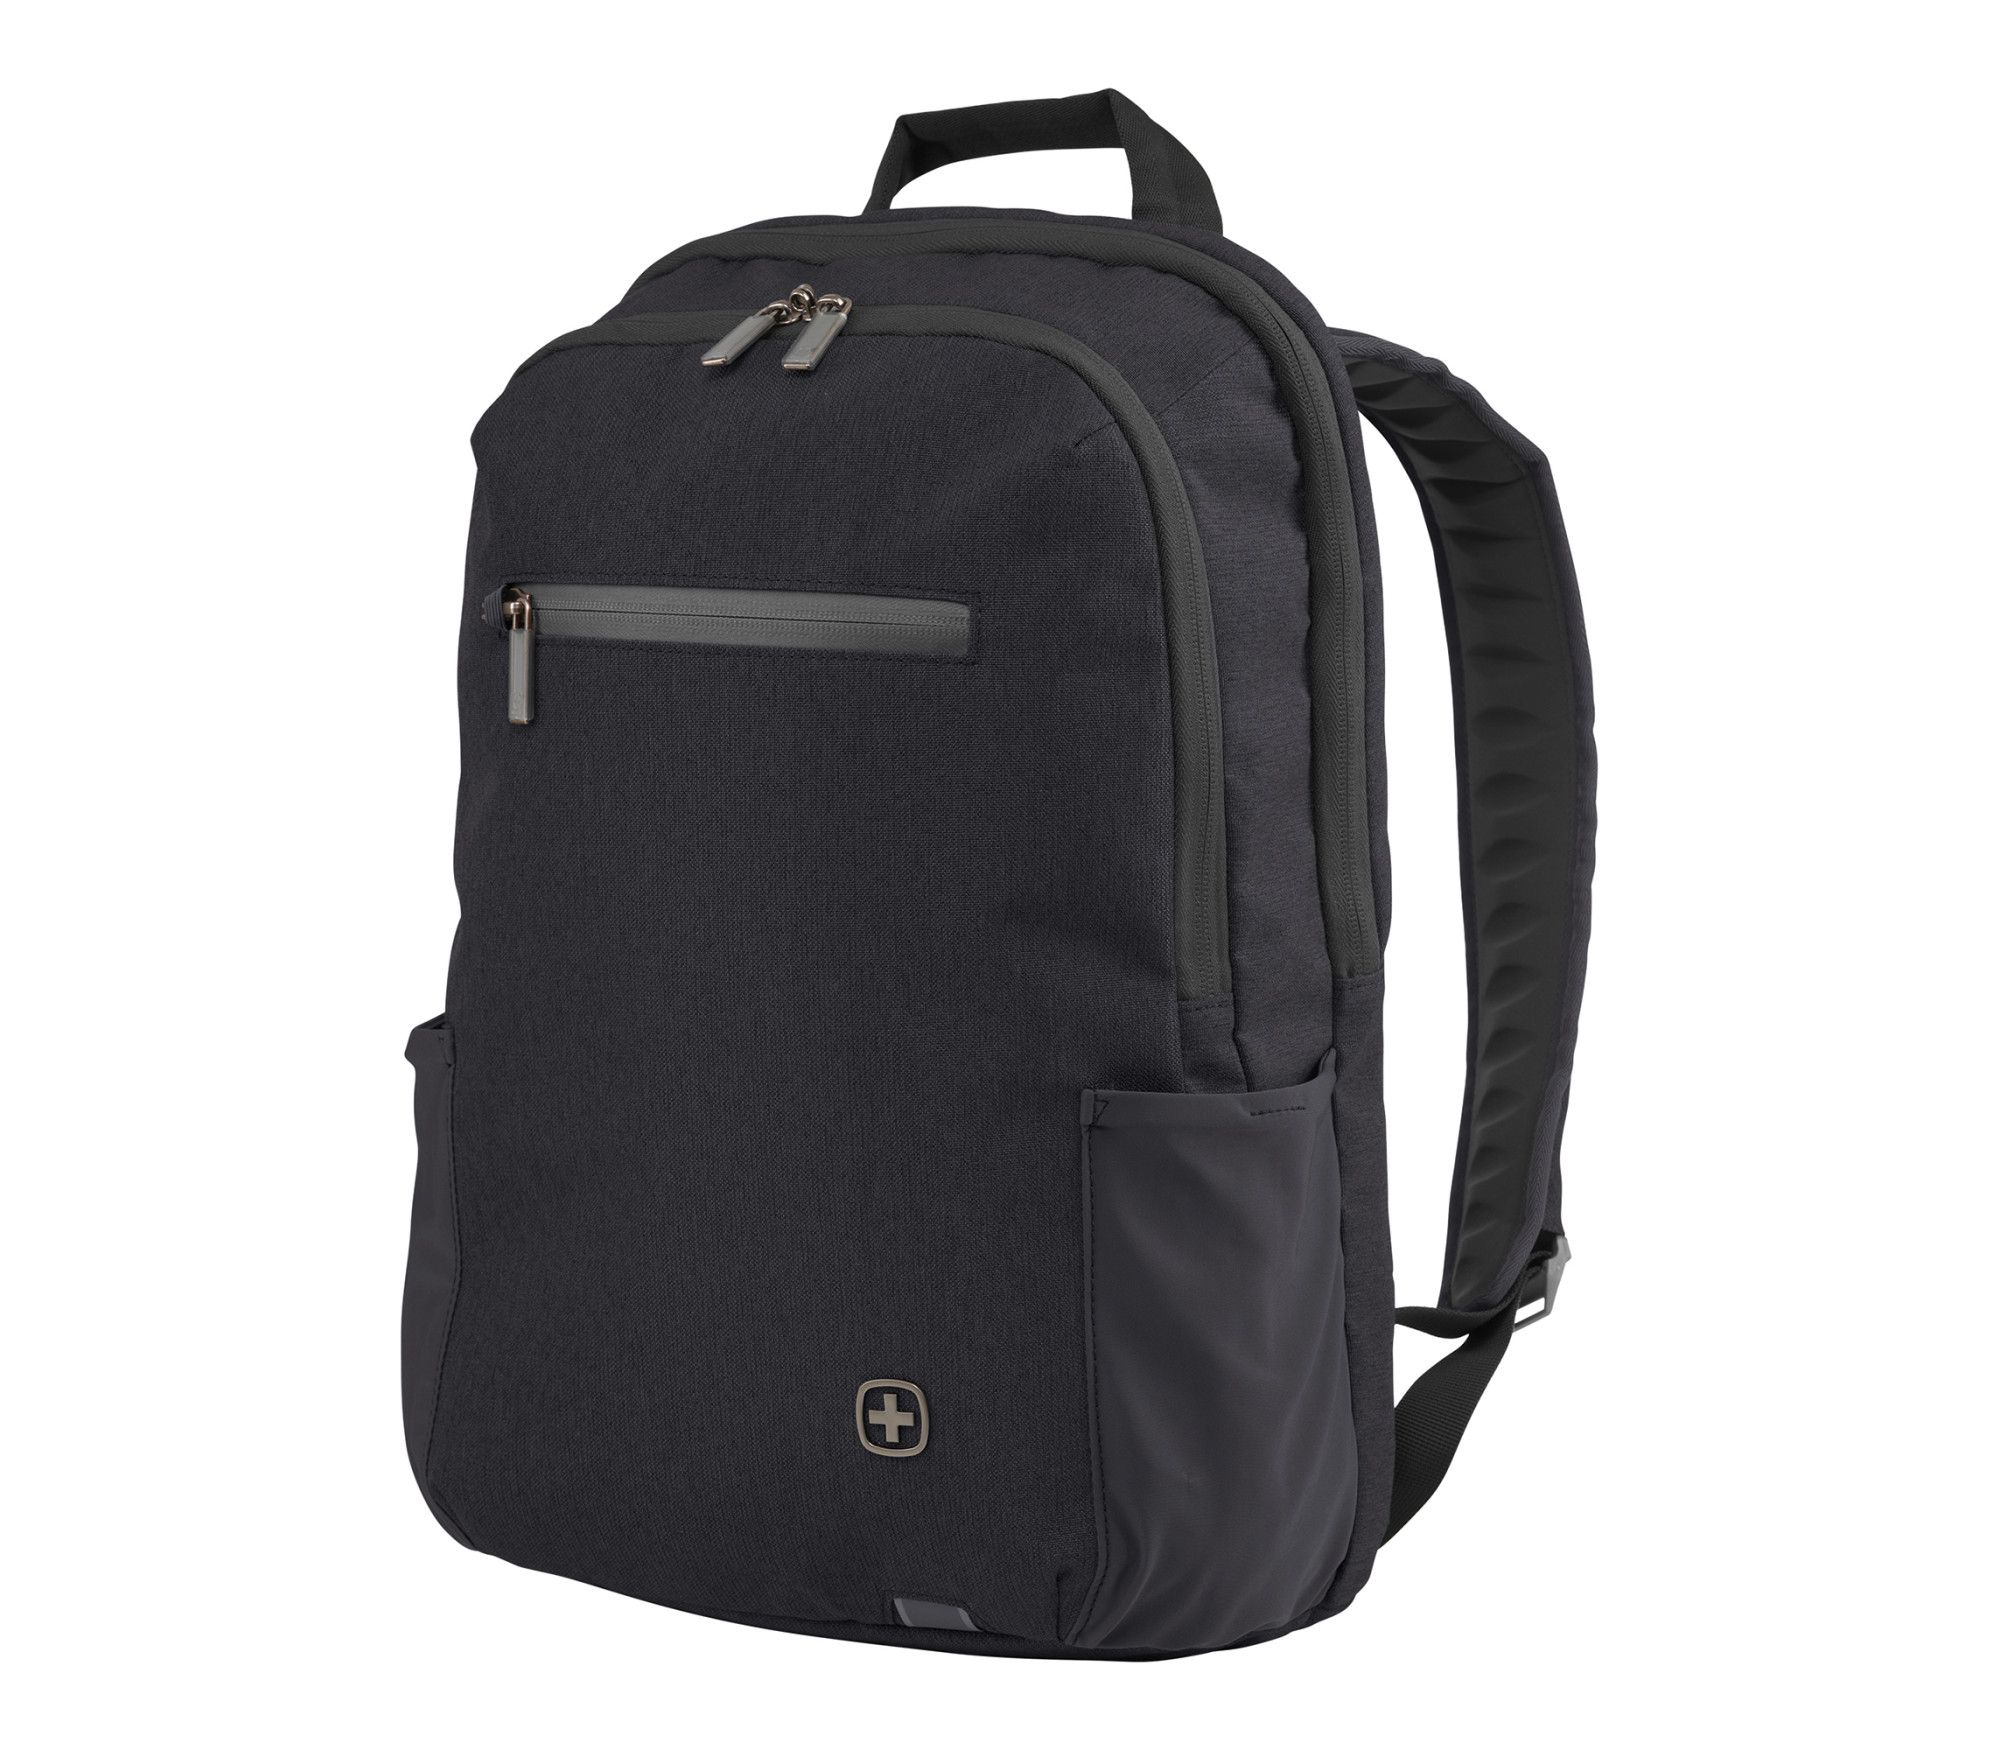 b30f3f2684 Wenger CityFriend 16   Laptop Backpack in black - 602809